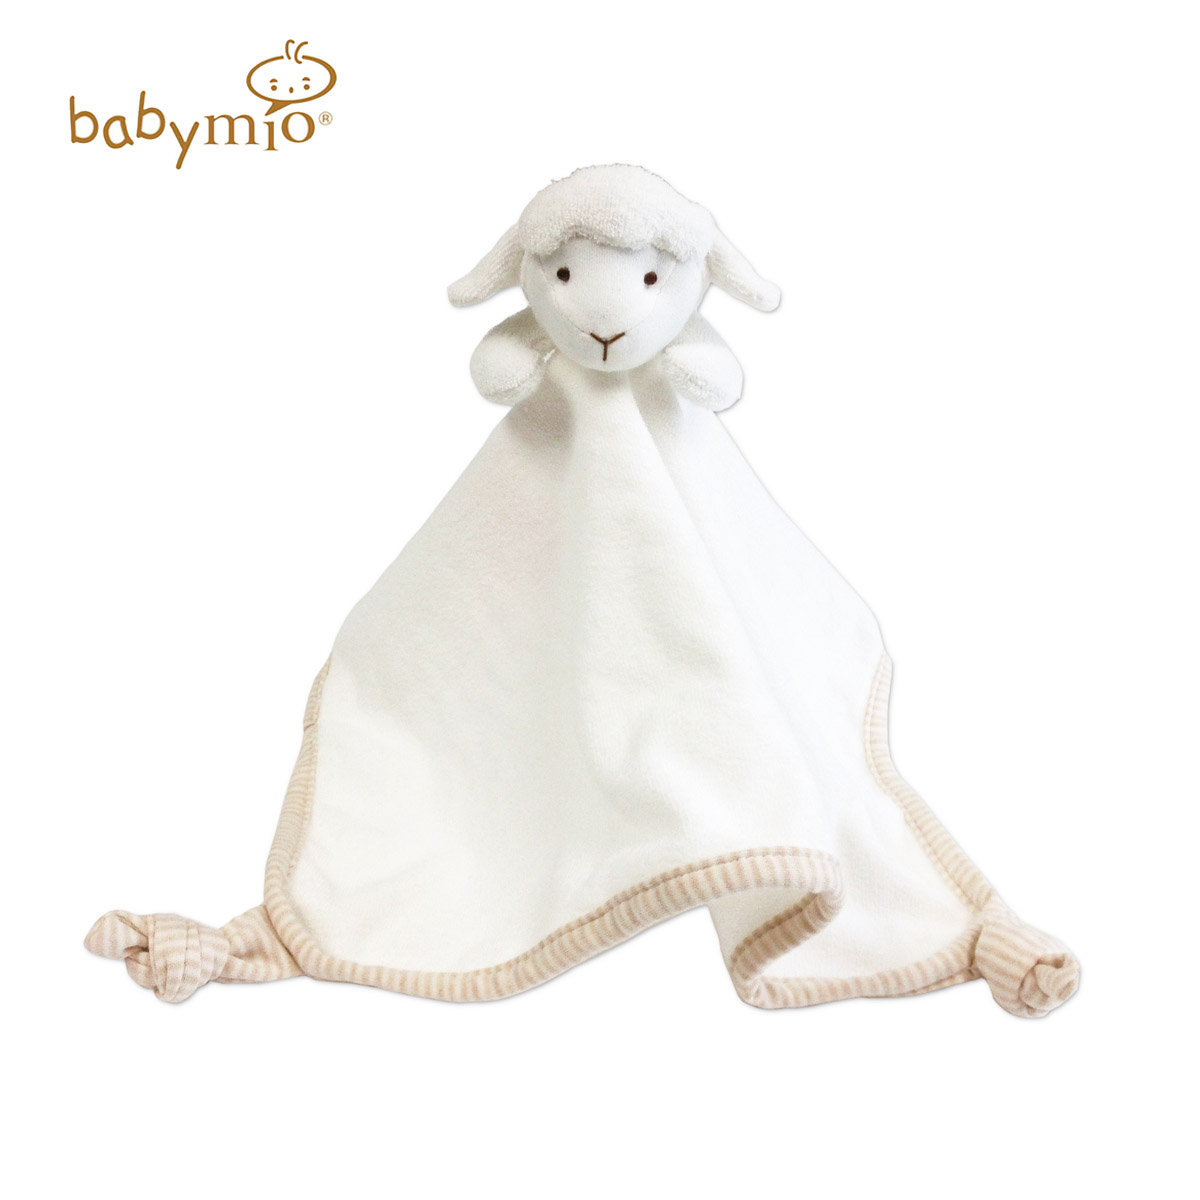 100% Organic Cotton Baby Security Snuggle Blanket / Comforter (Sheep)